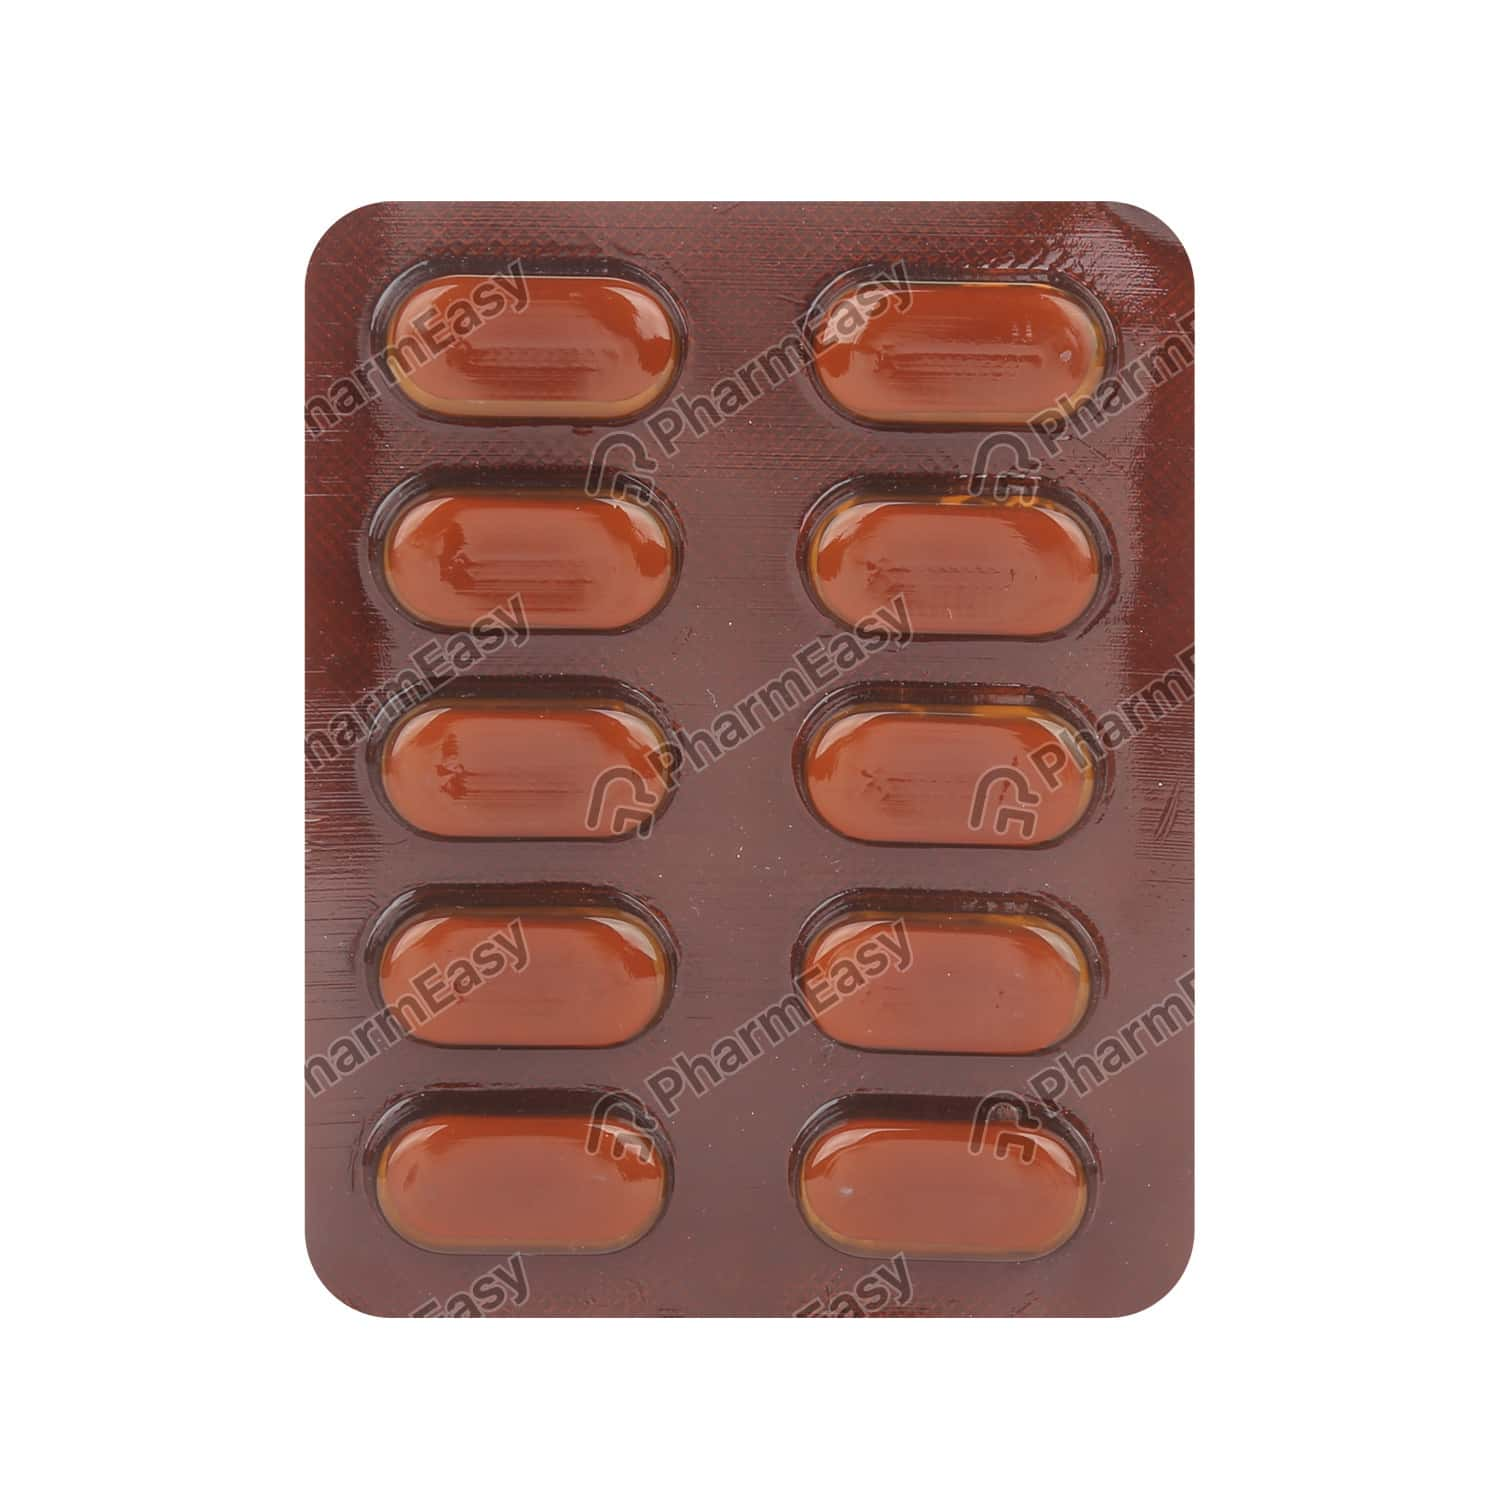 B 29 Lc Strip Of 10 Tablets